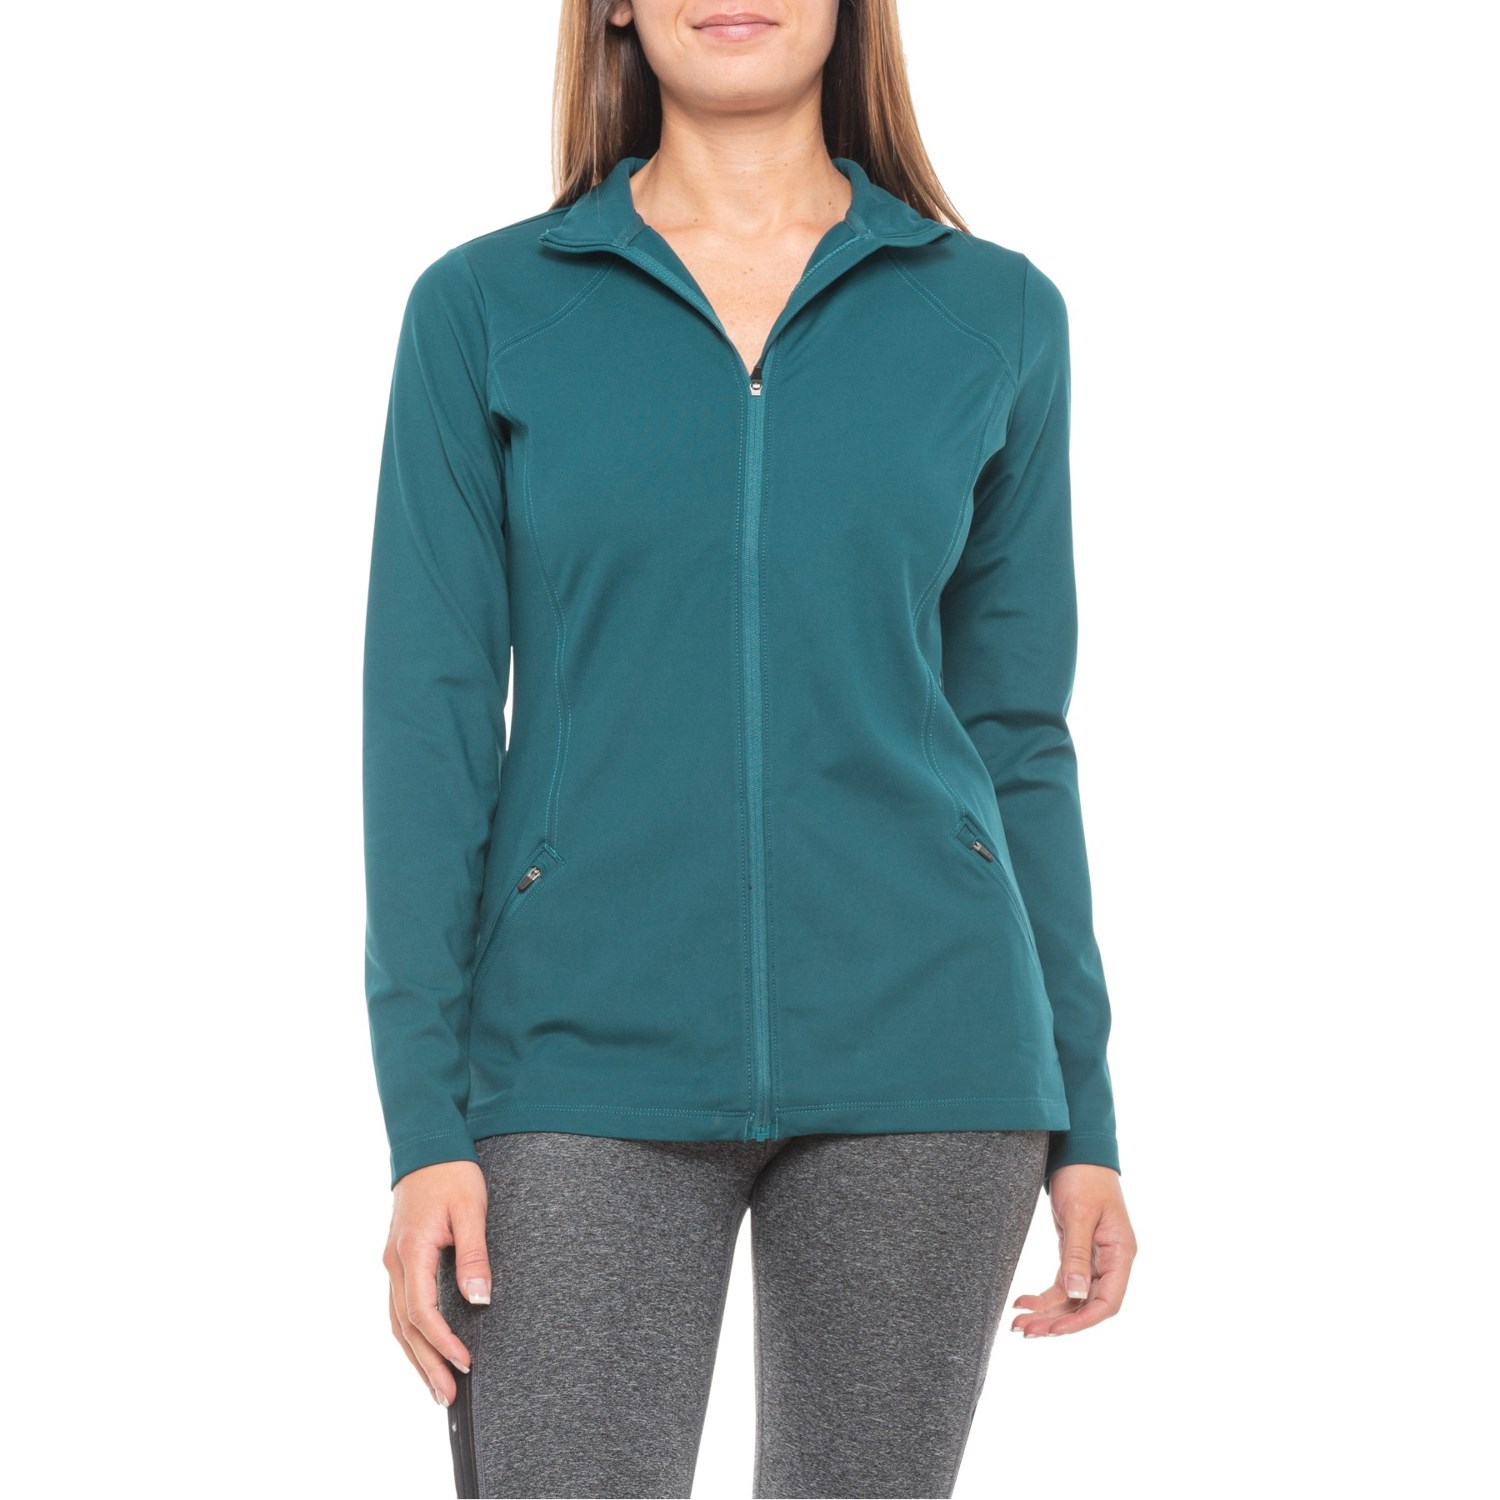 Royal Robbins Jammer Knit Jacket (For Women) Save 38%